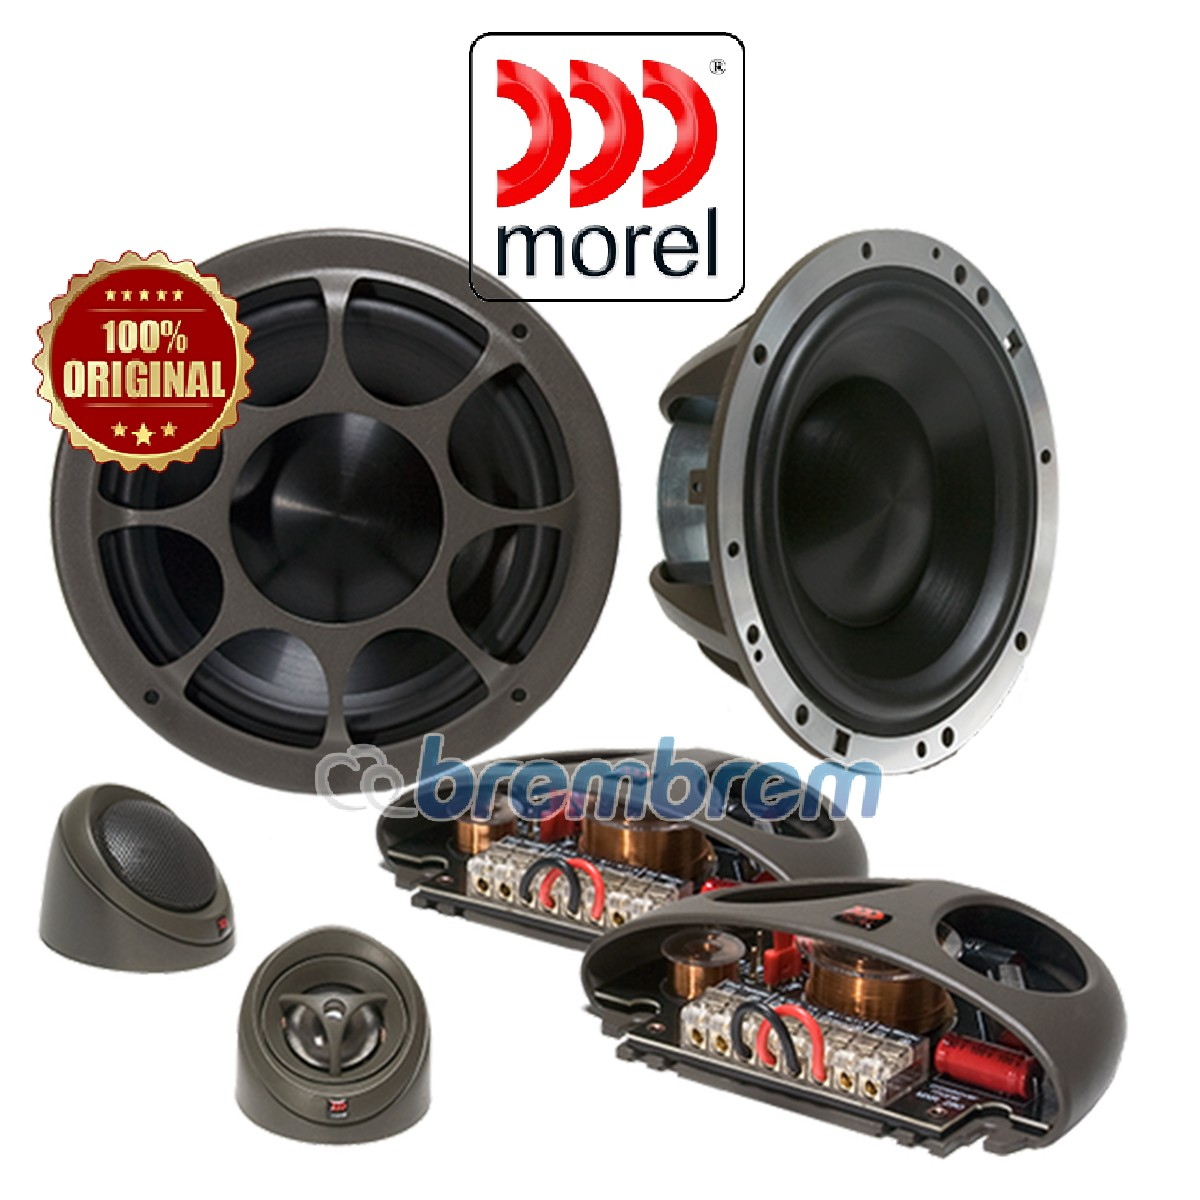 MOREL ELATE 602 - SPEAKER 2 WAY